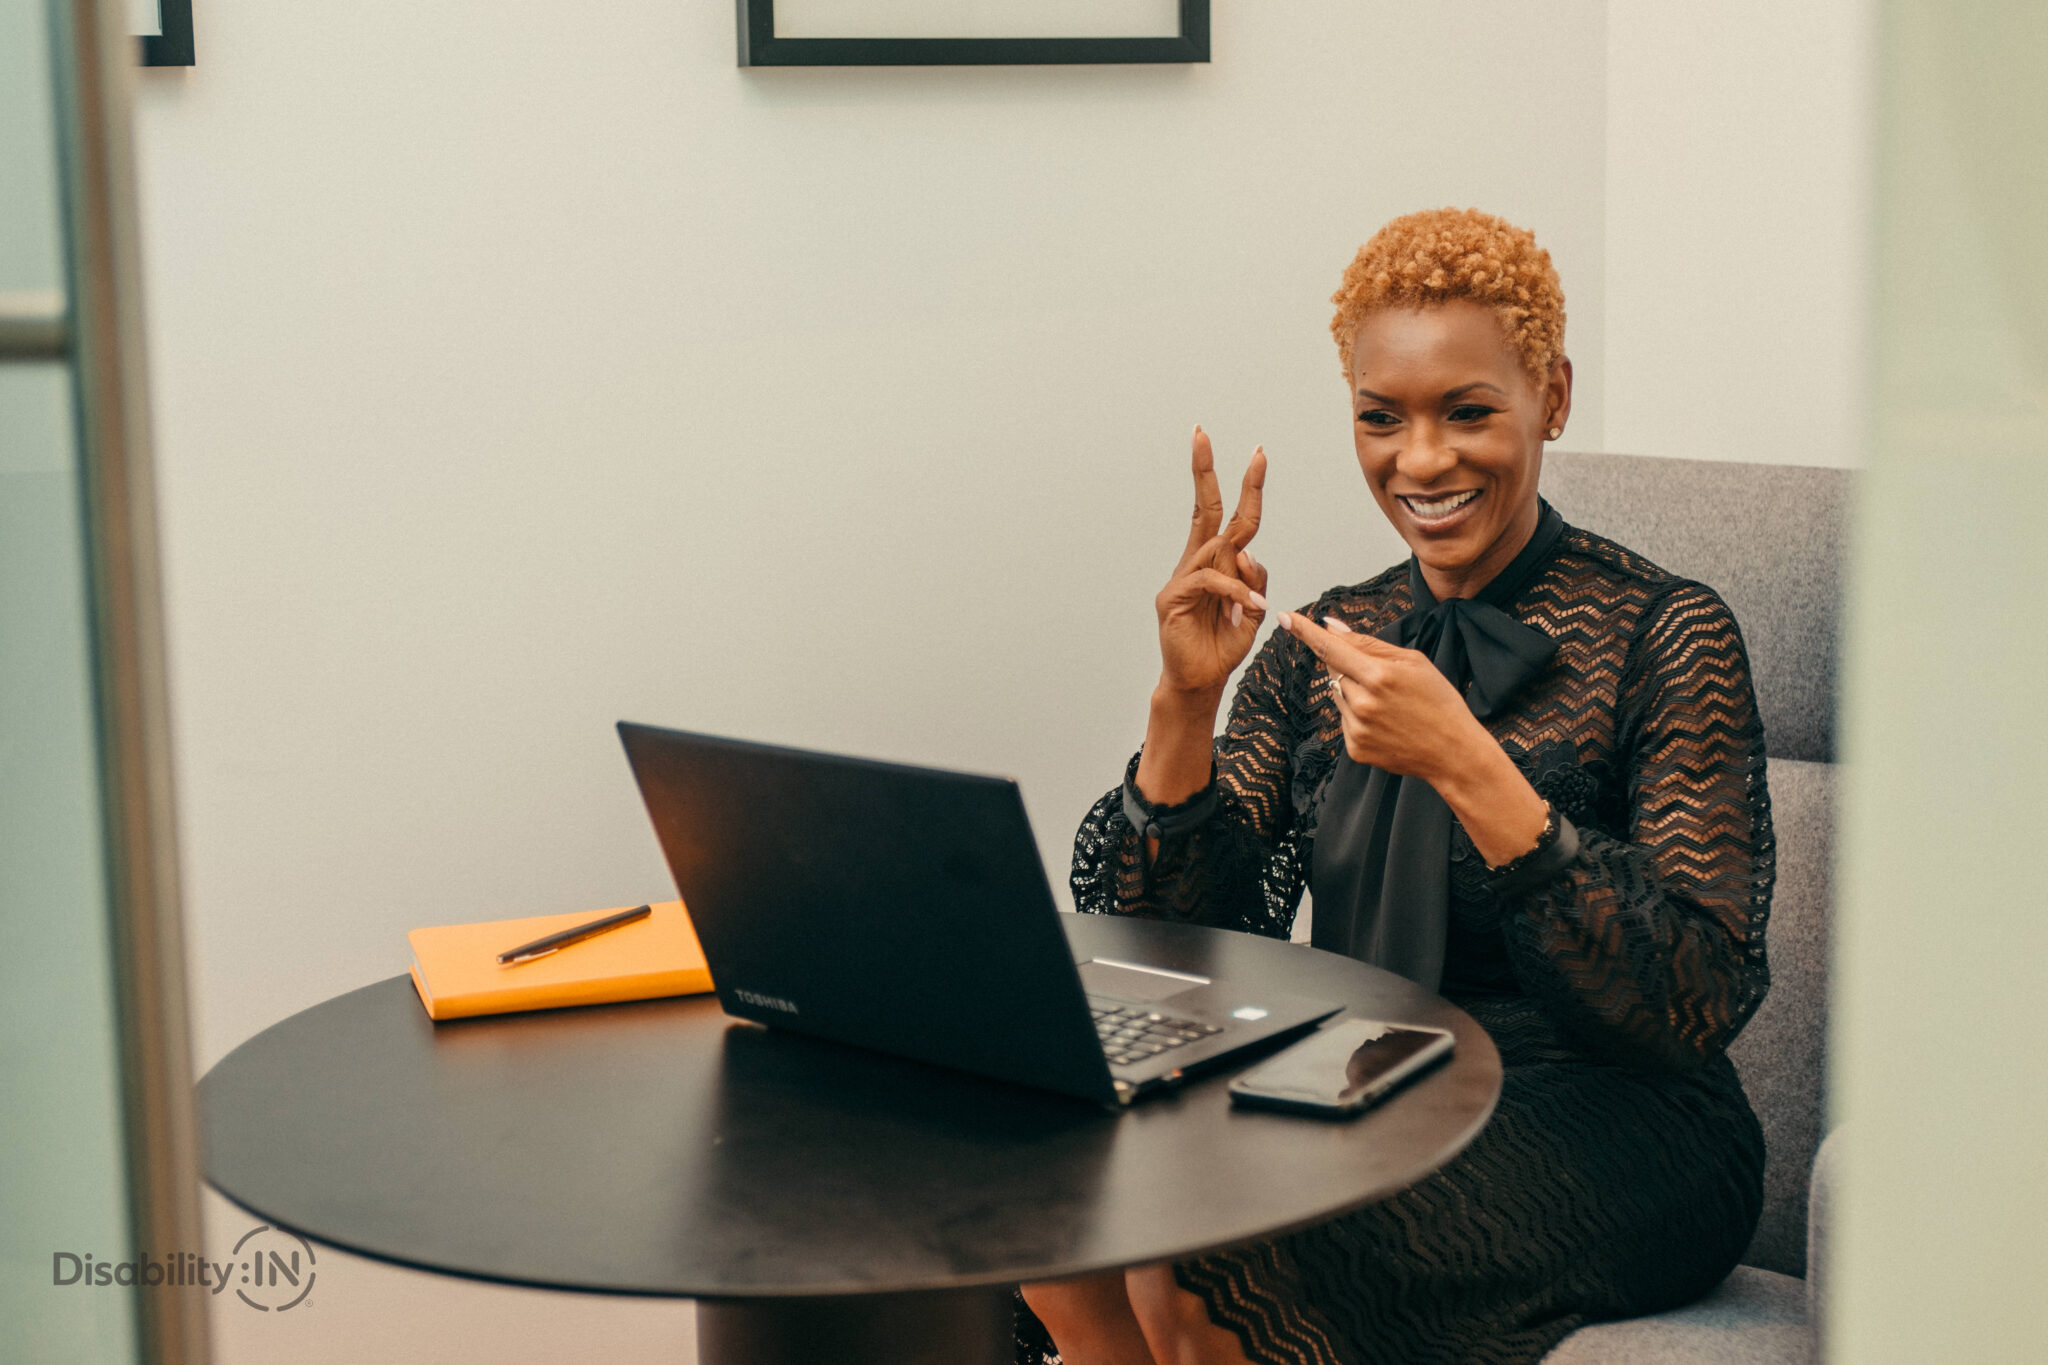 The dos and don'ts of attracting diverse talent